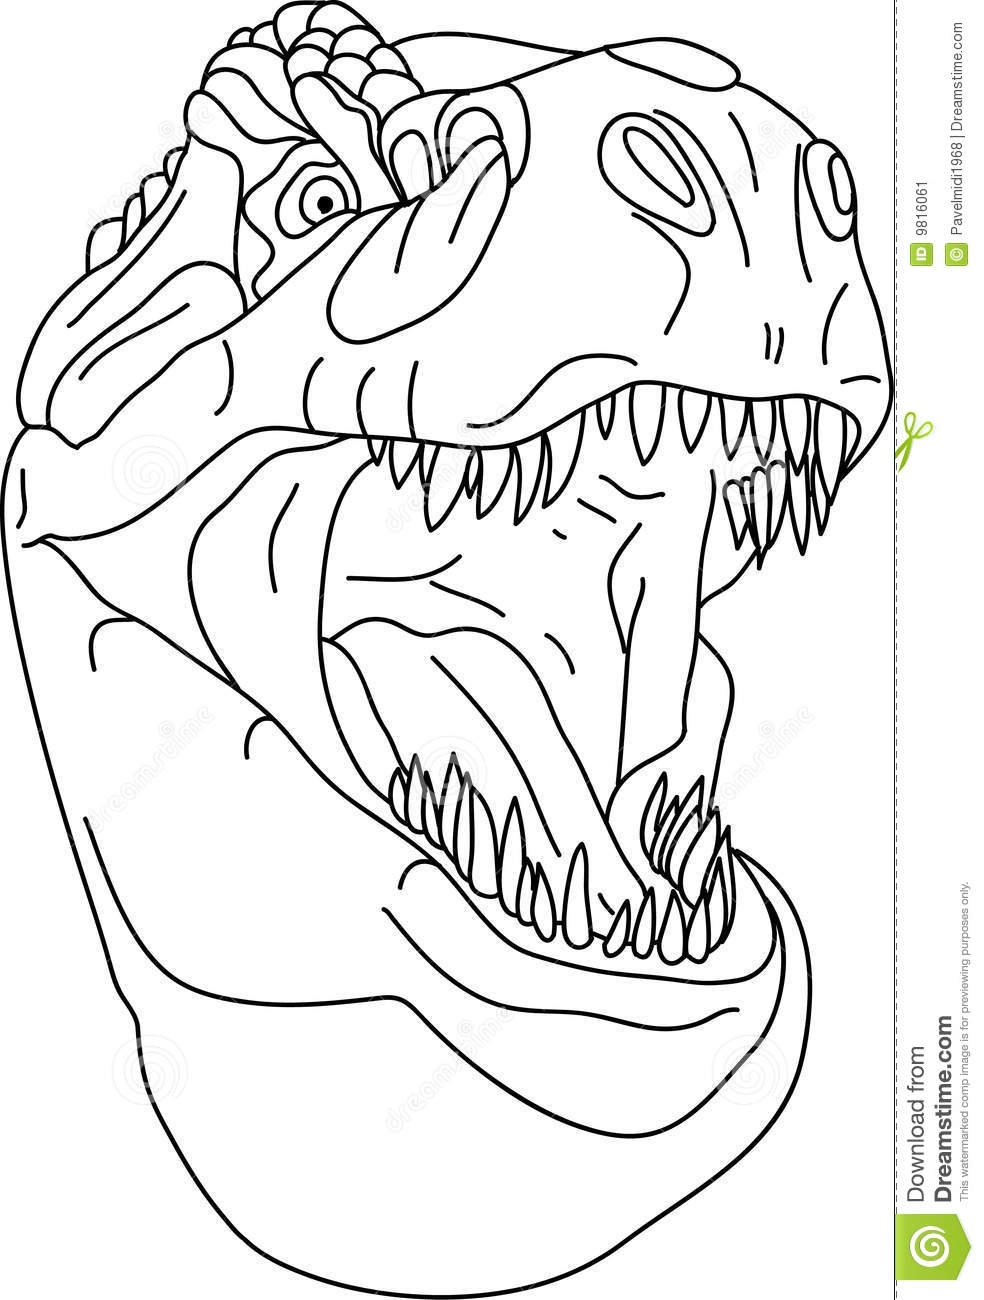 intricate coloring pages - stock image t rex head image